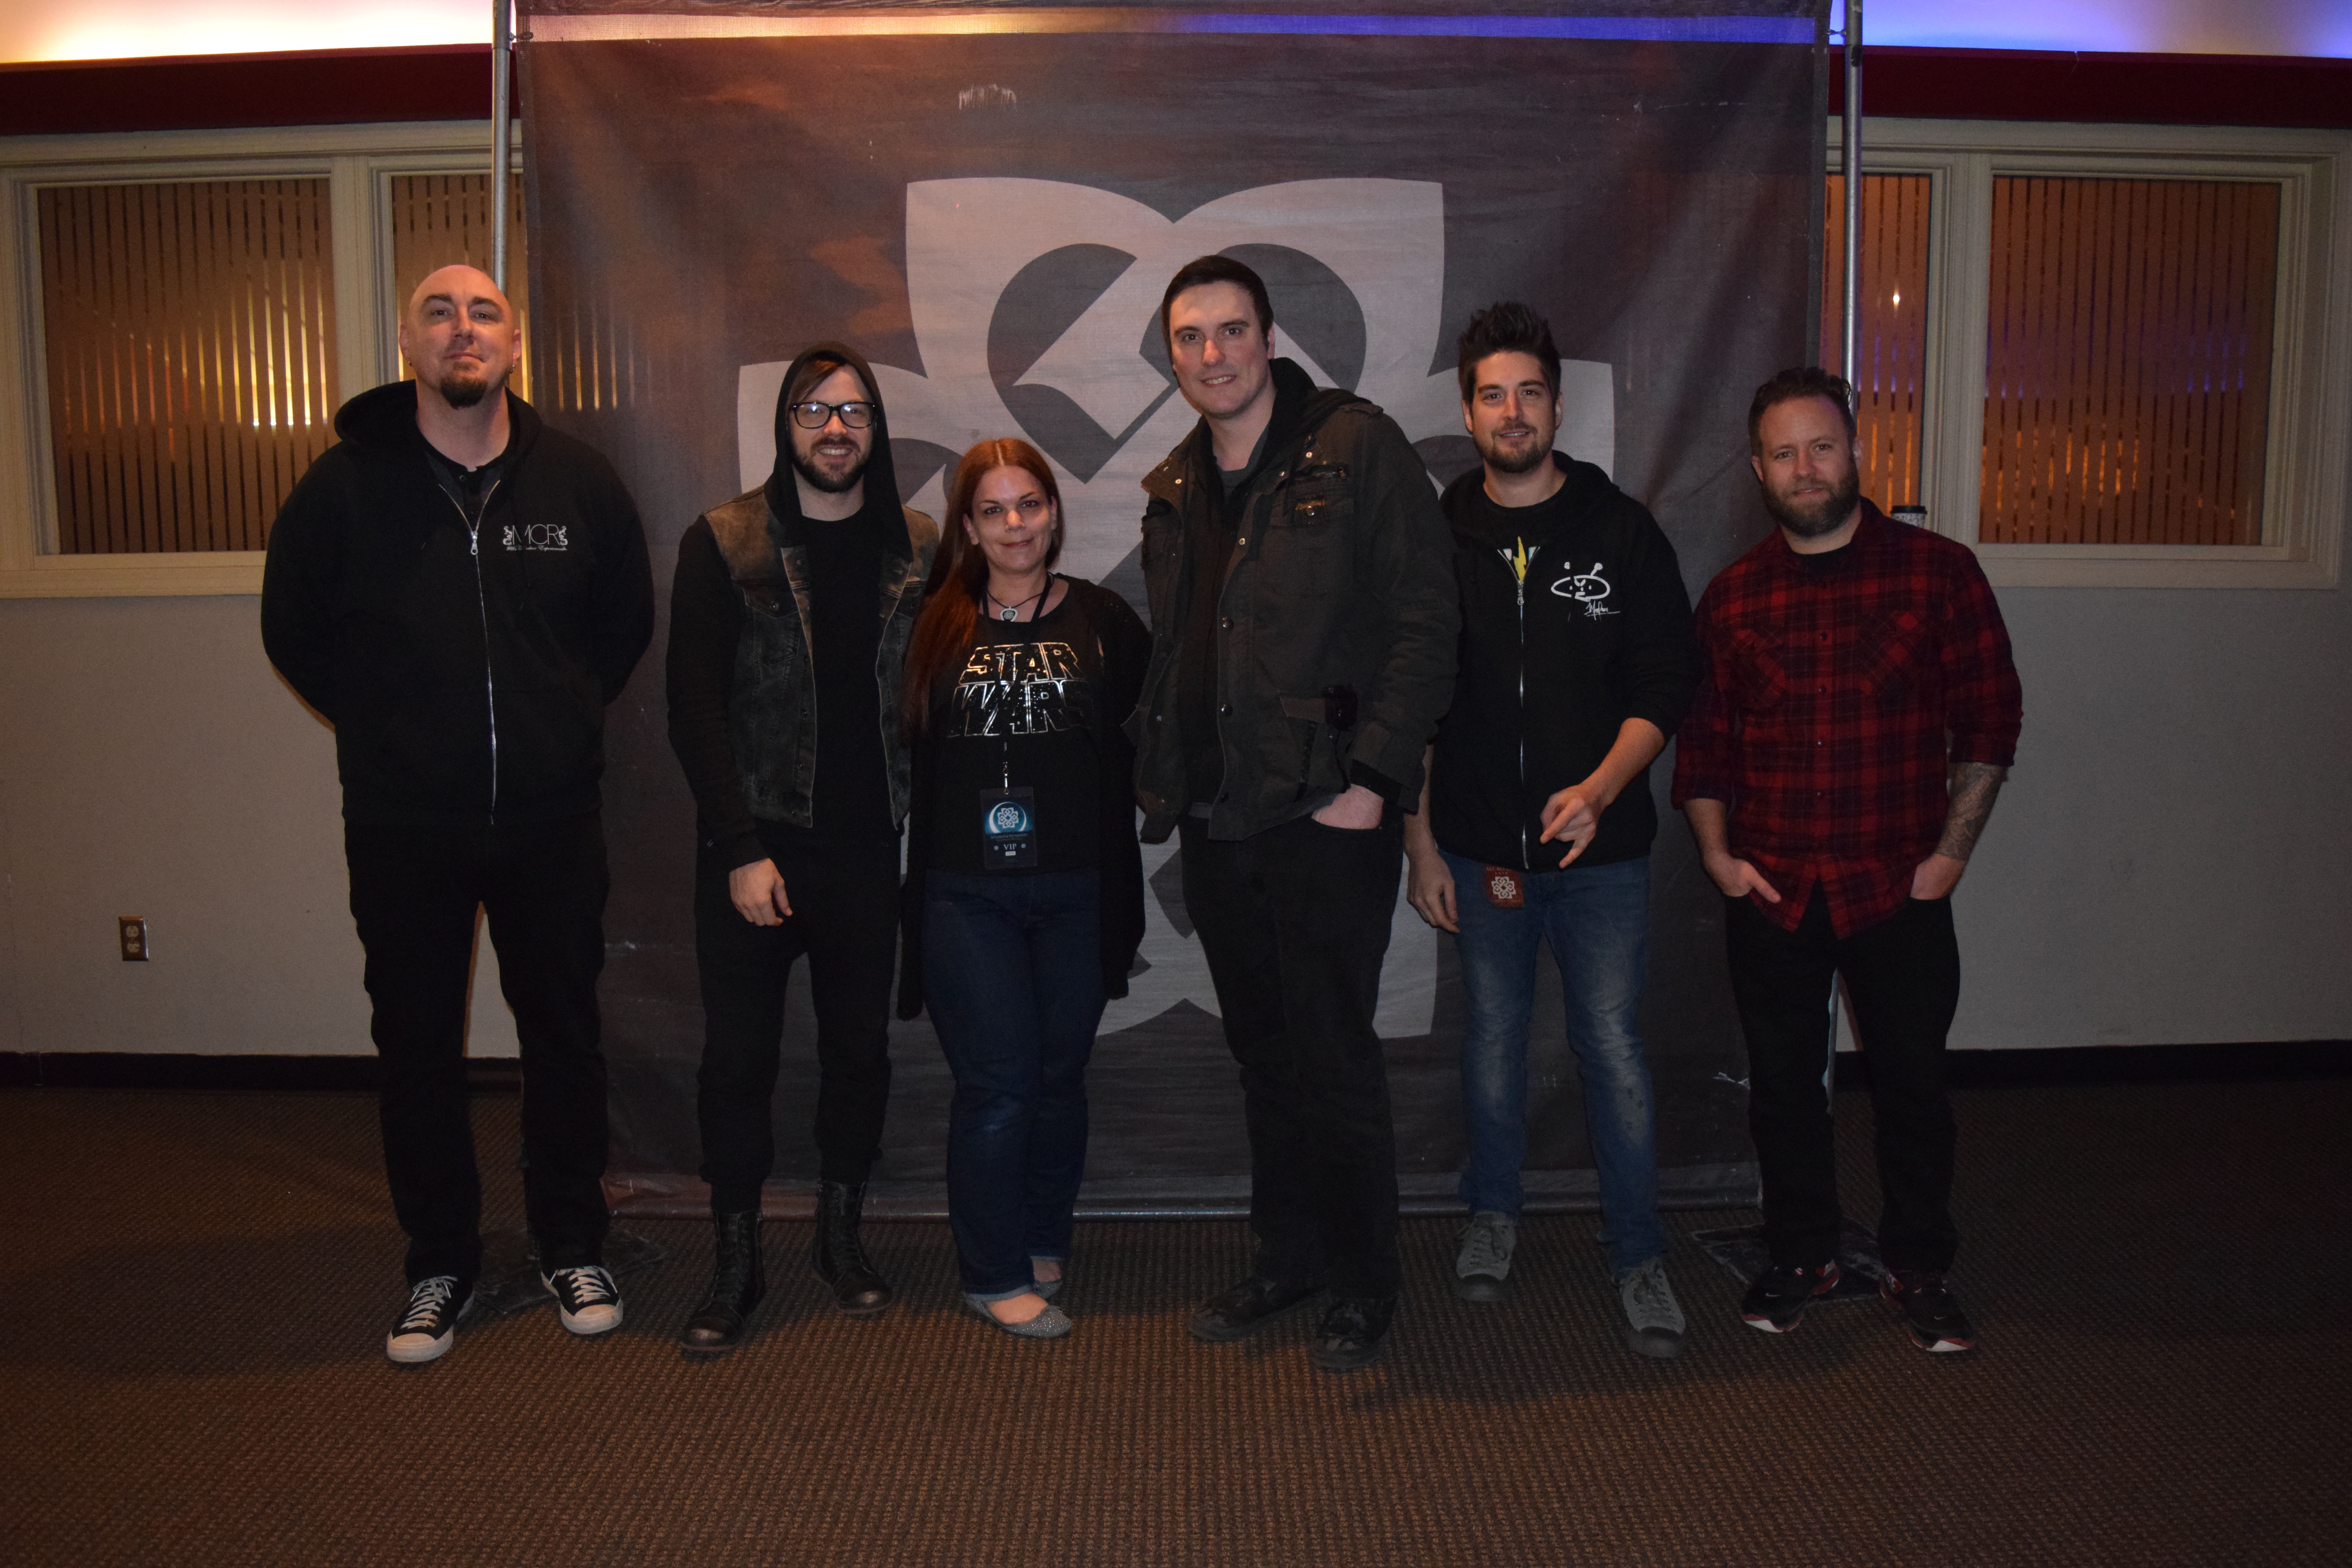 Vip Meet Greet Photos The Dome At Oakdale Wallingford Ct